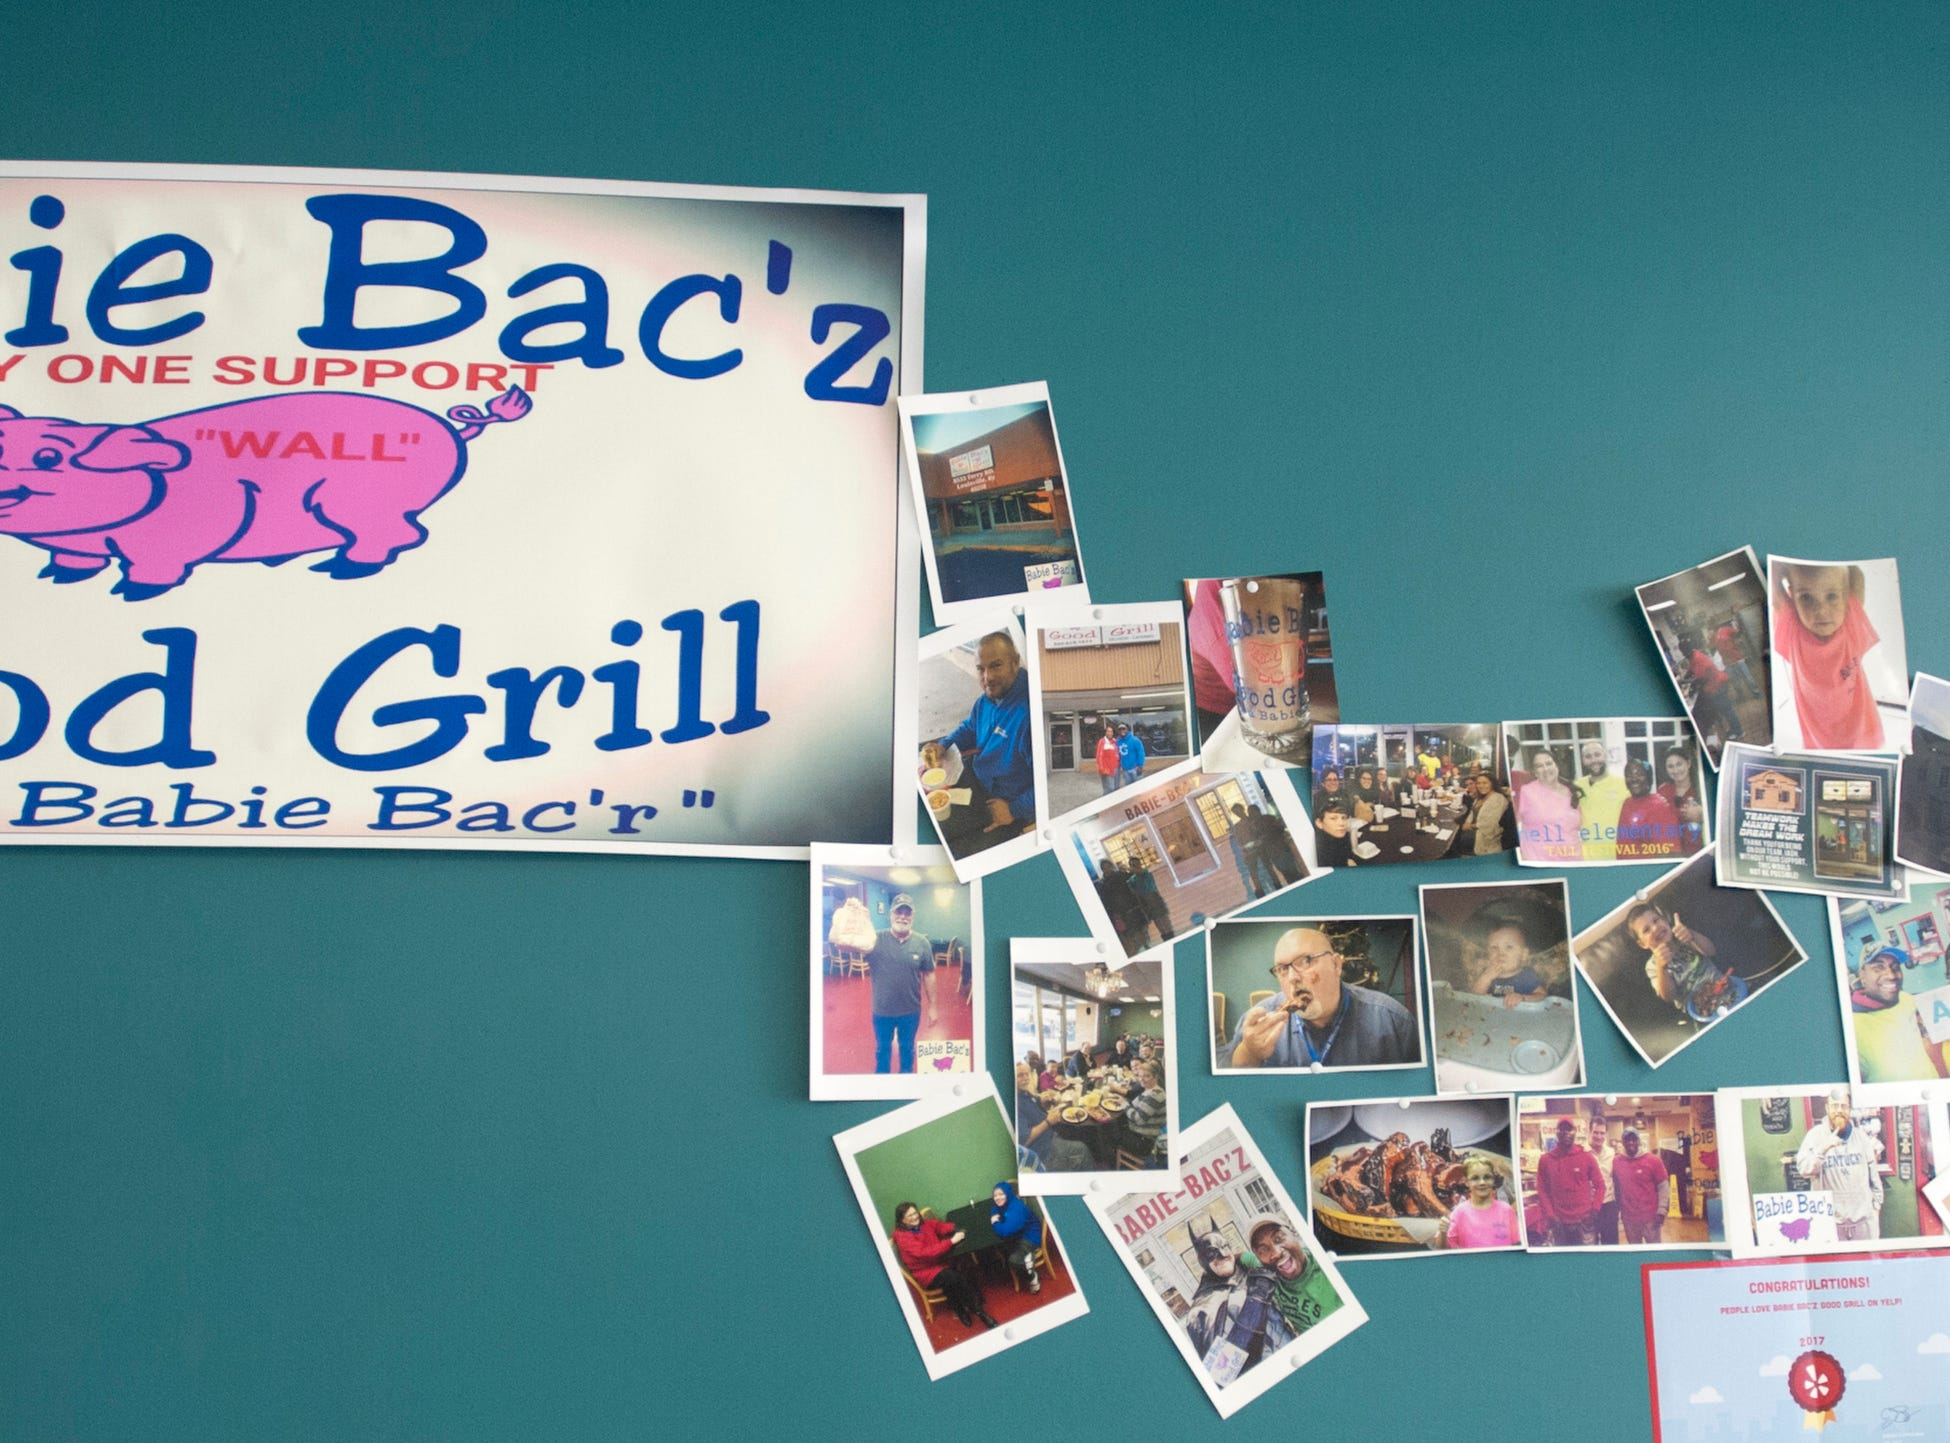 A wall in the Babie Bac'z Good Grill features snapshots of the patrons on the eatery's first day of business, in December of 2017.